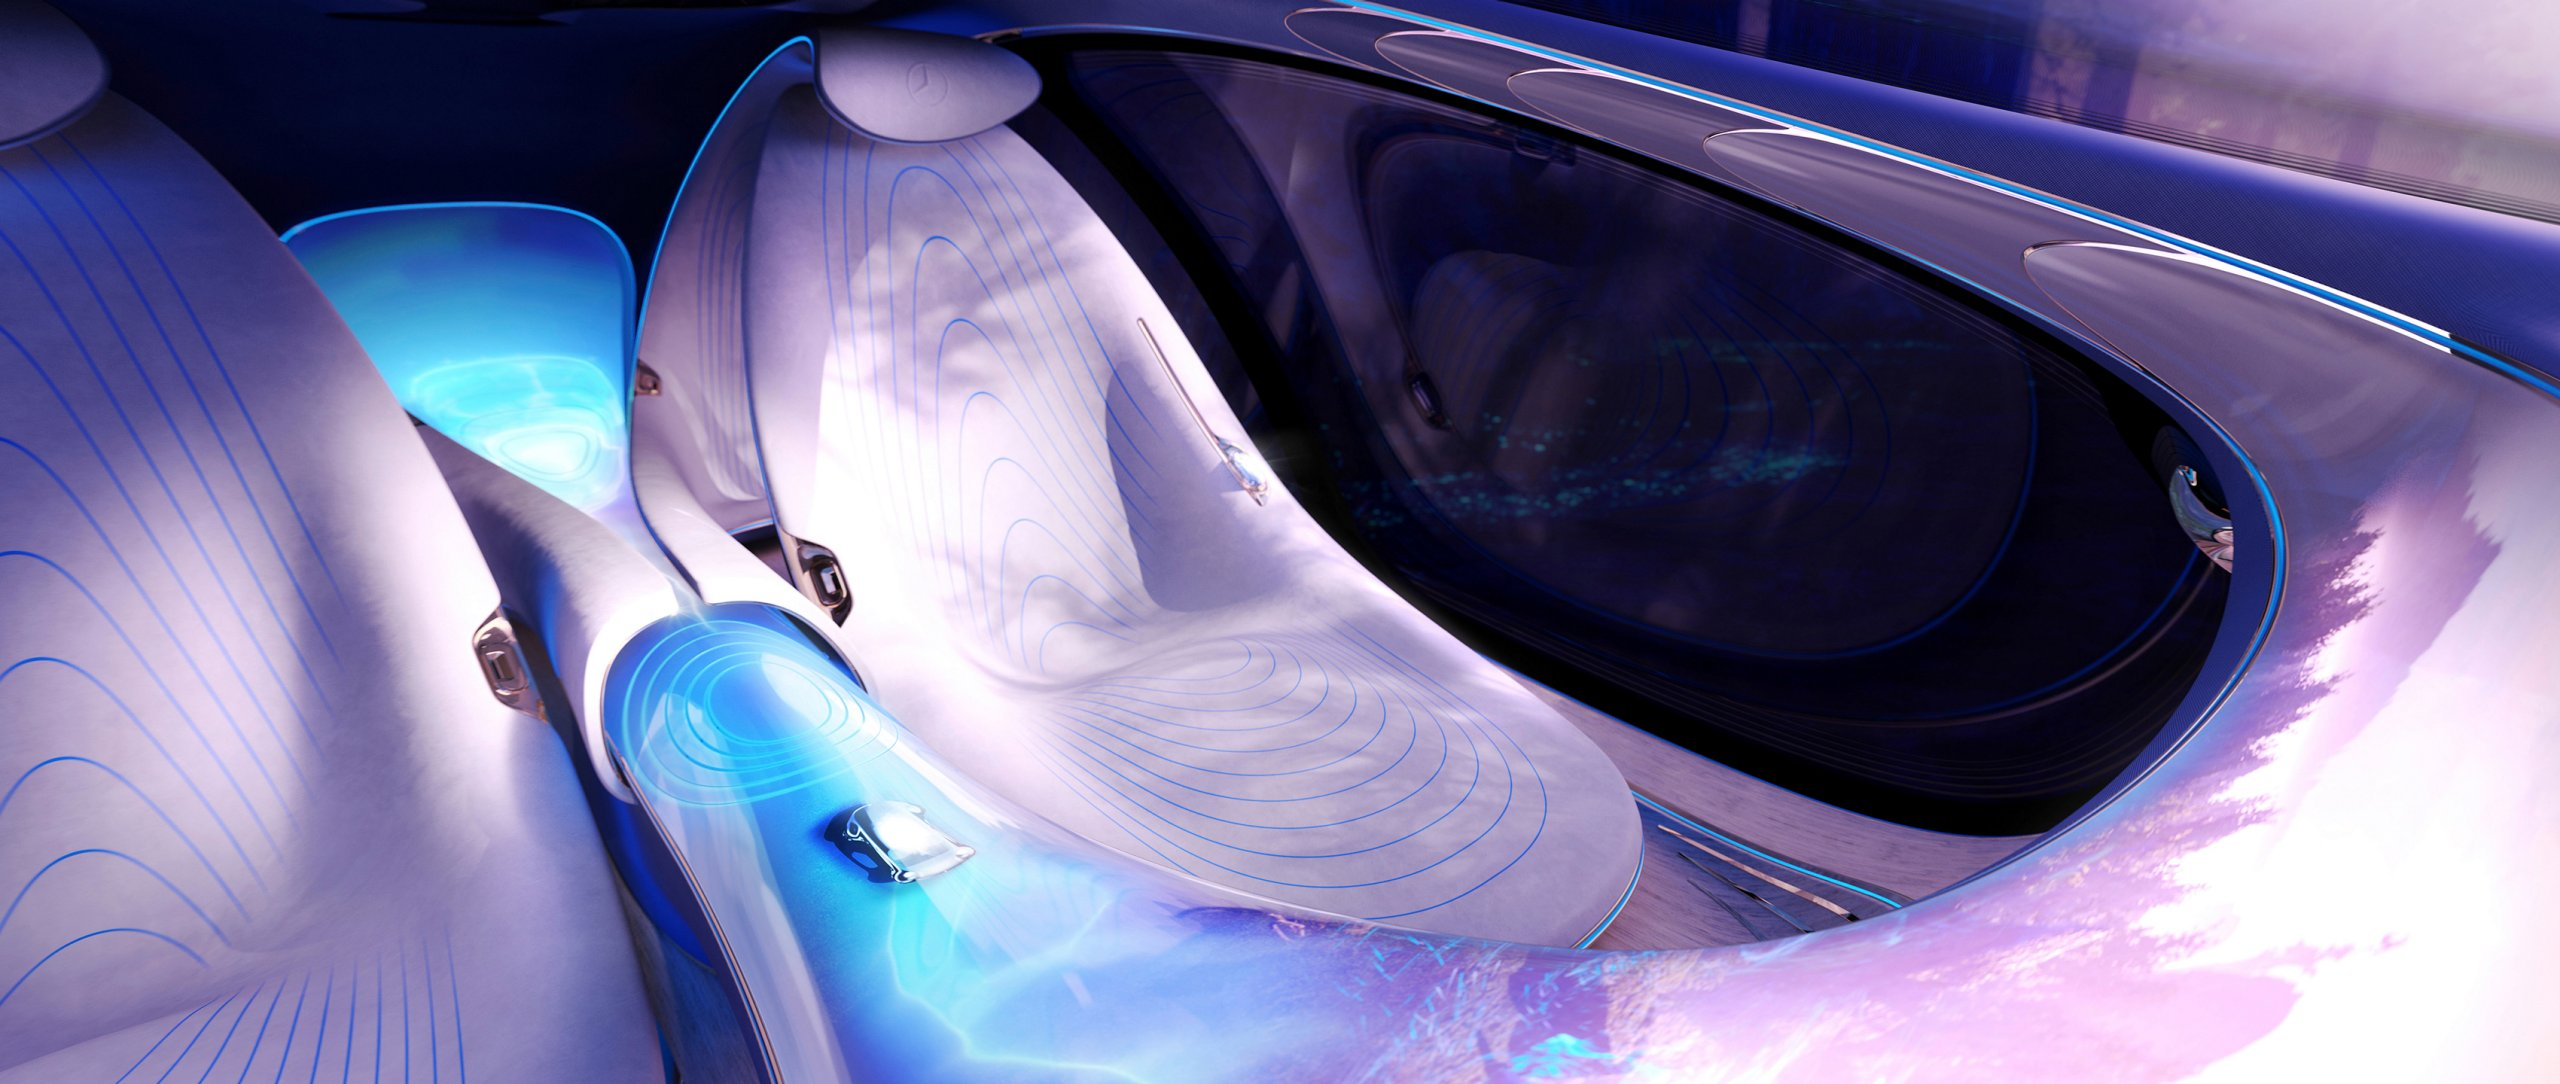 The seats of the Mercedes-Benz VISION AVTR – inspired by AVATAR